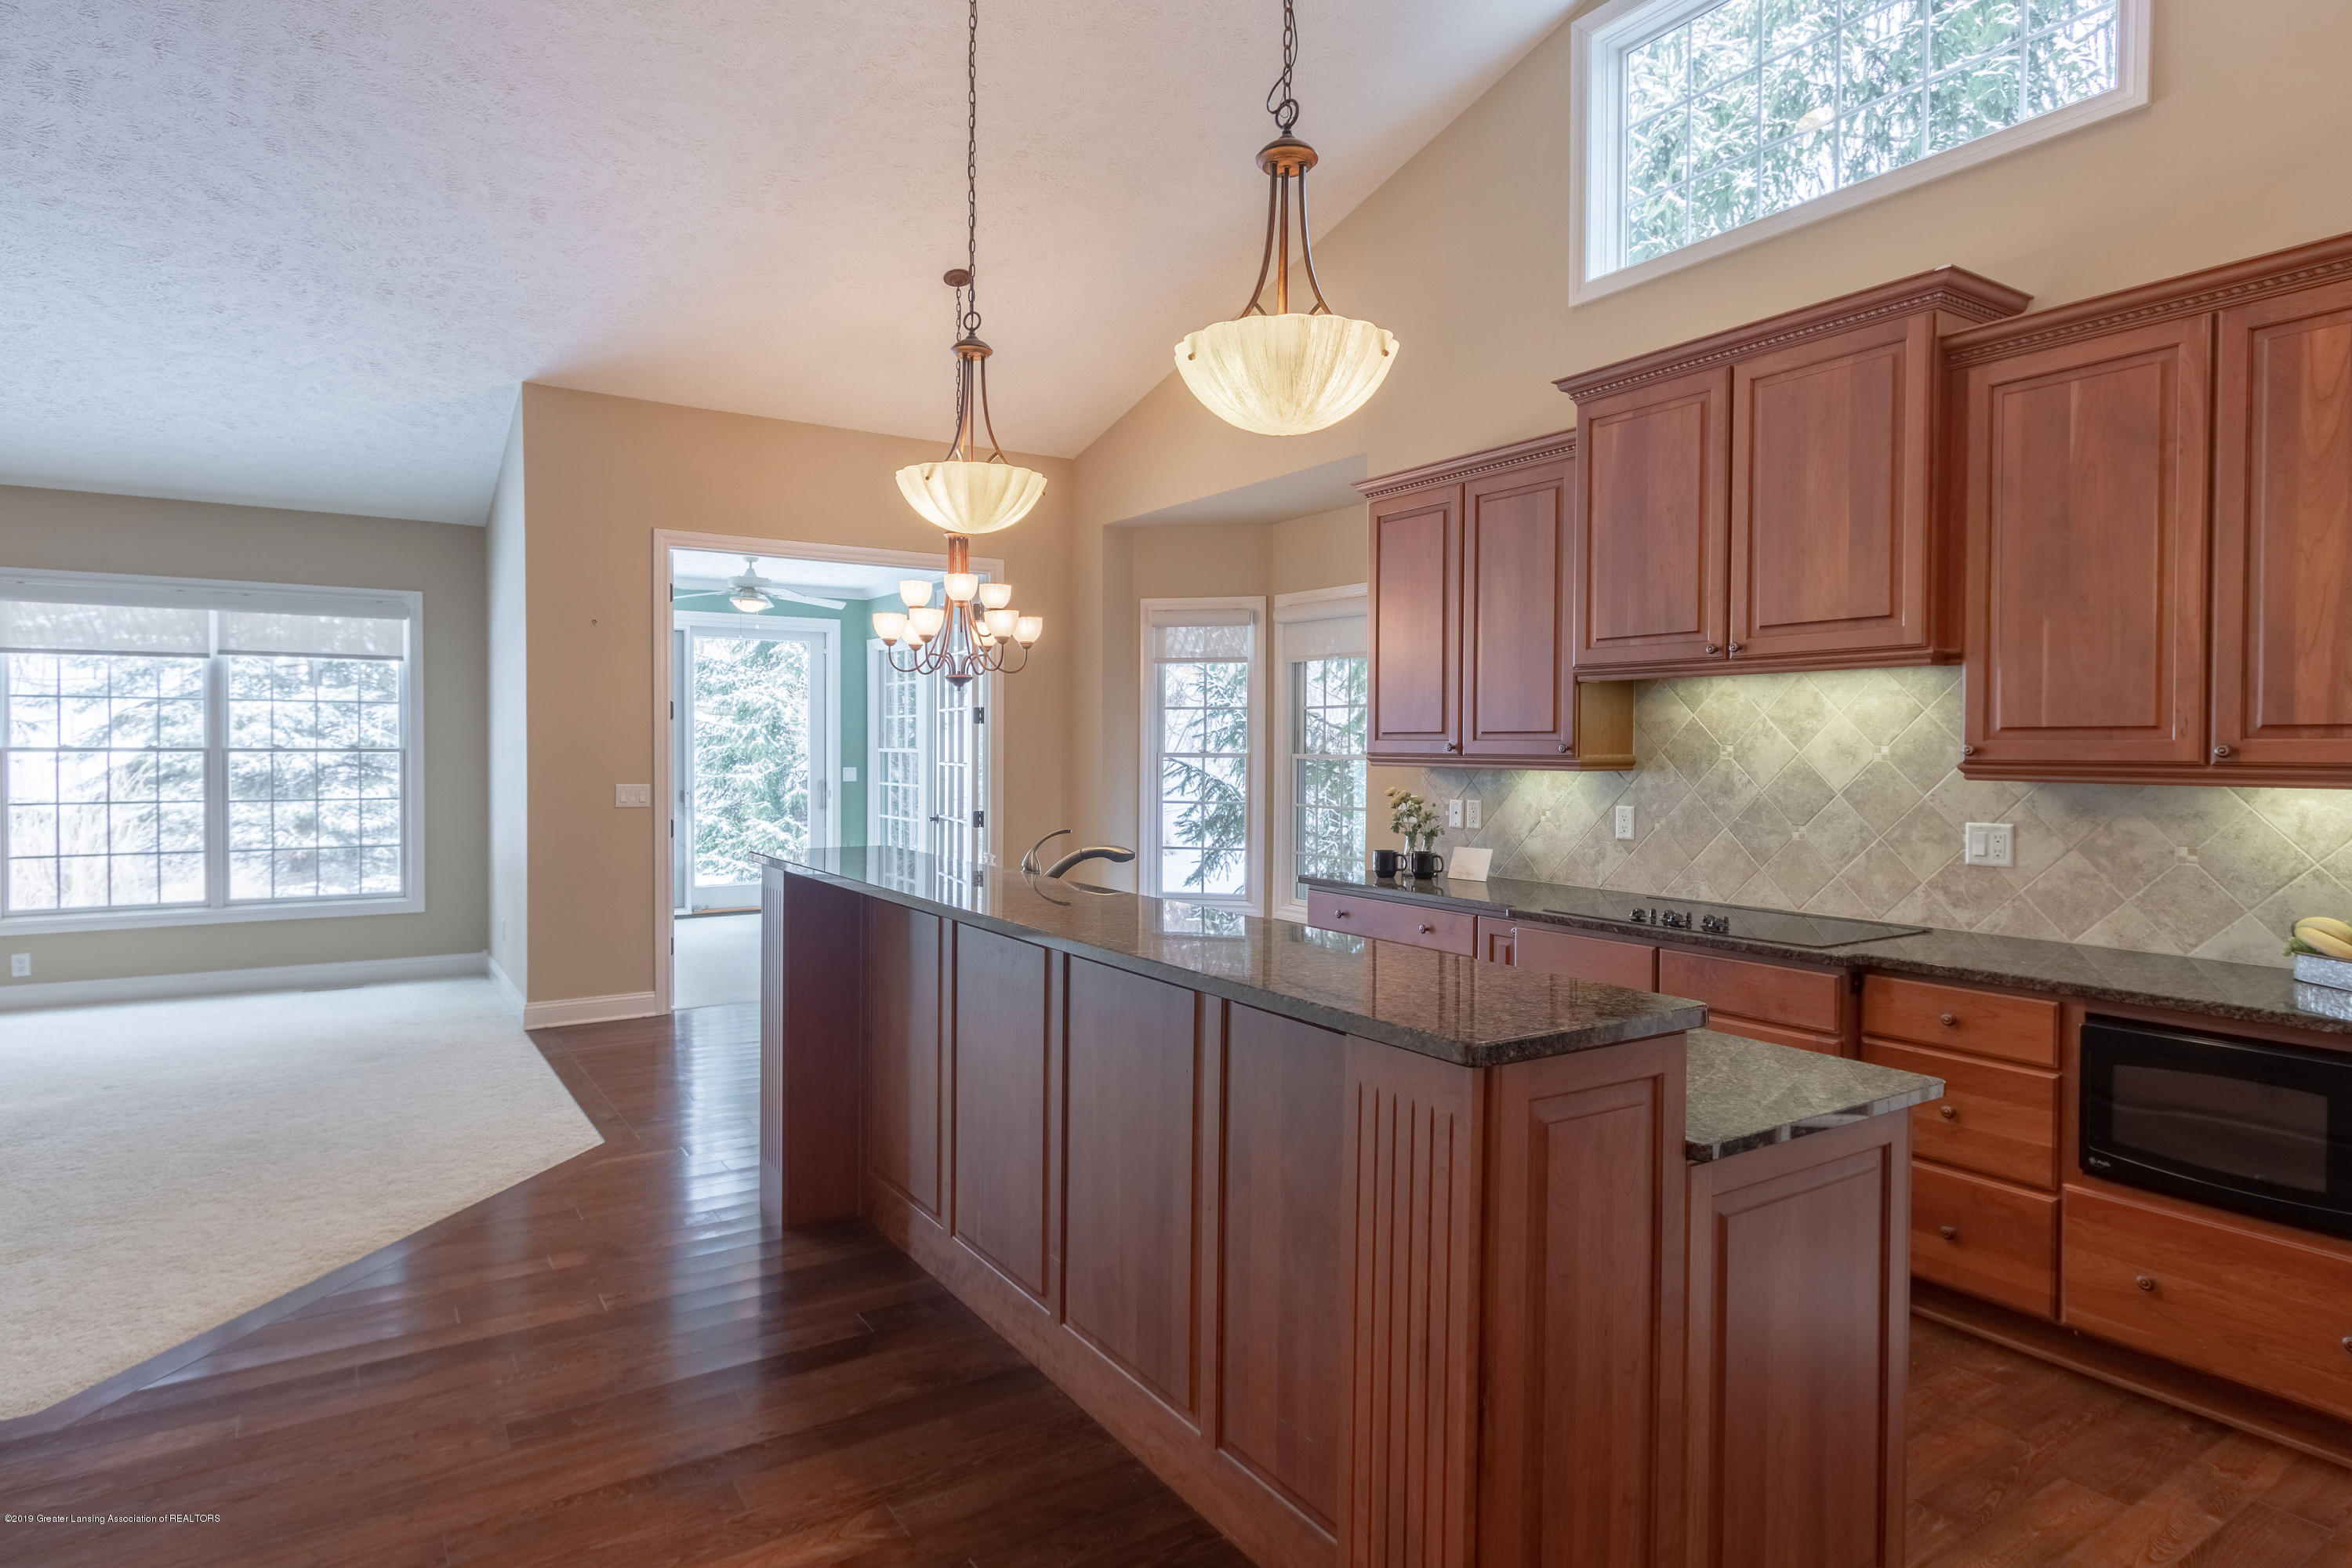 6153 Graebear Trail - Kitchen open to living room - 10